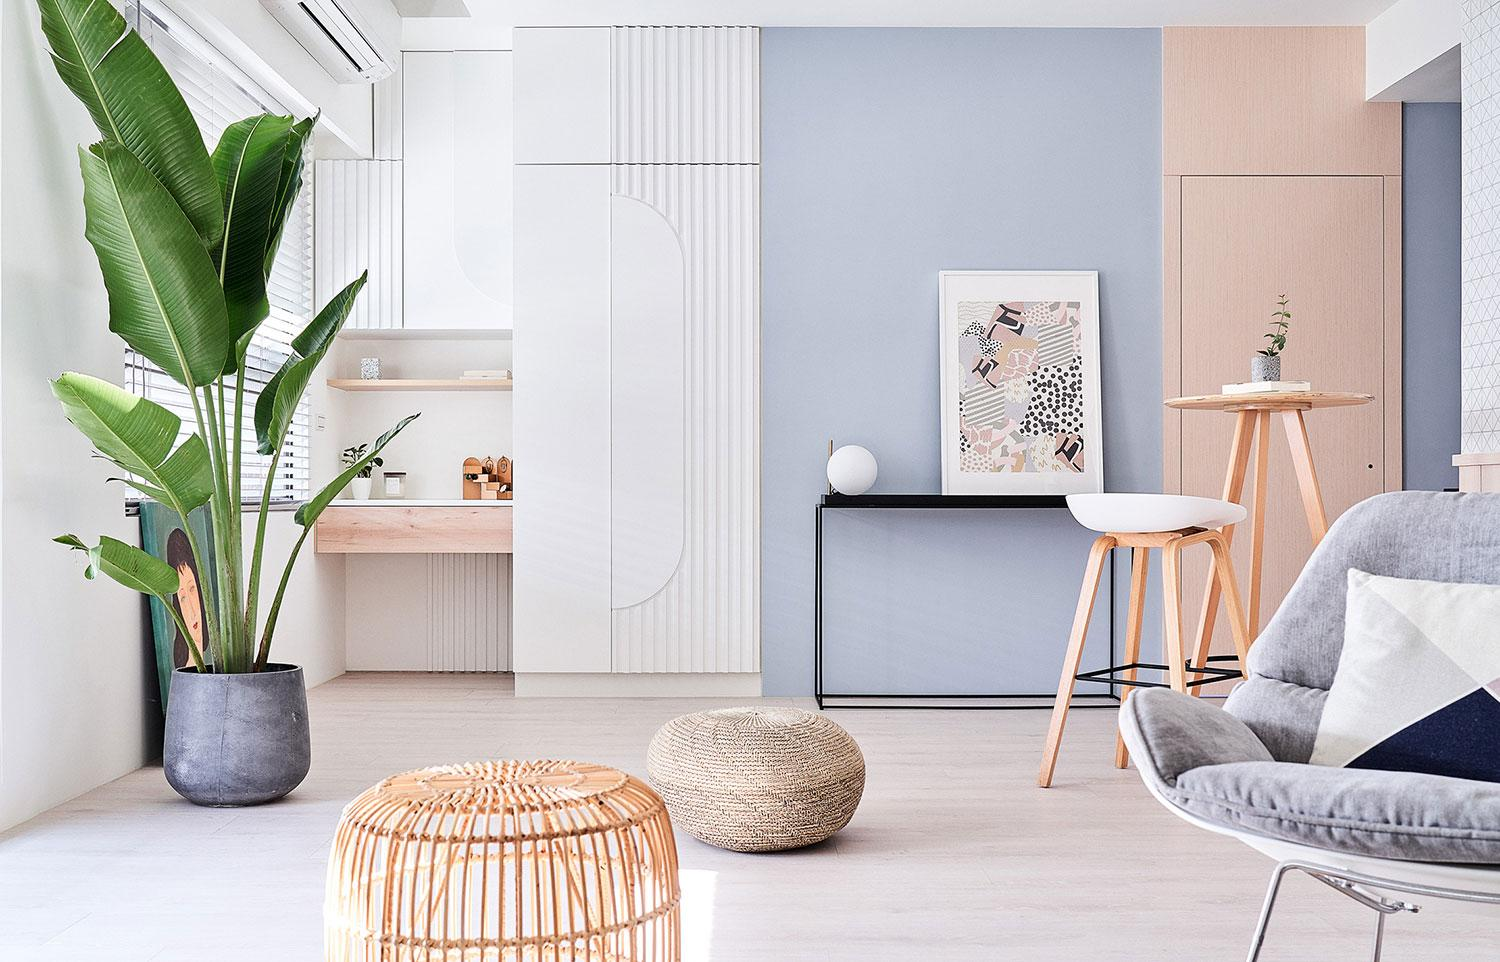 Step Inside a Whimsical Taiwan Apartment Inspired by Soft Rainbow Hues